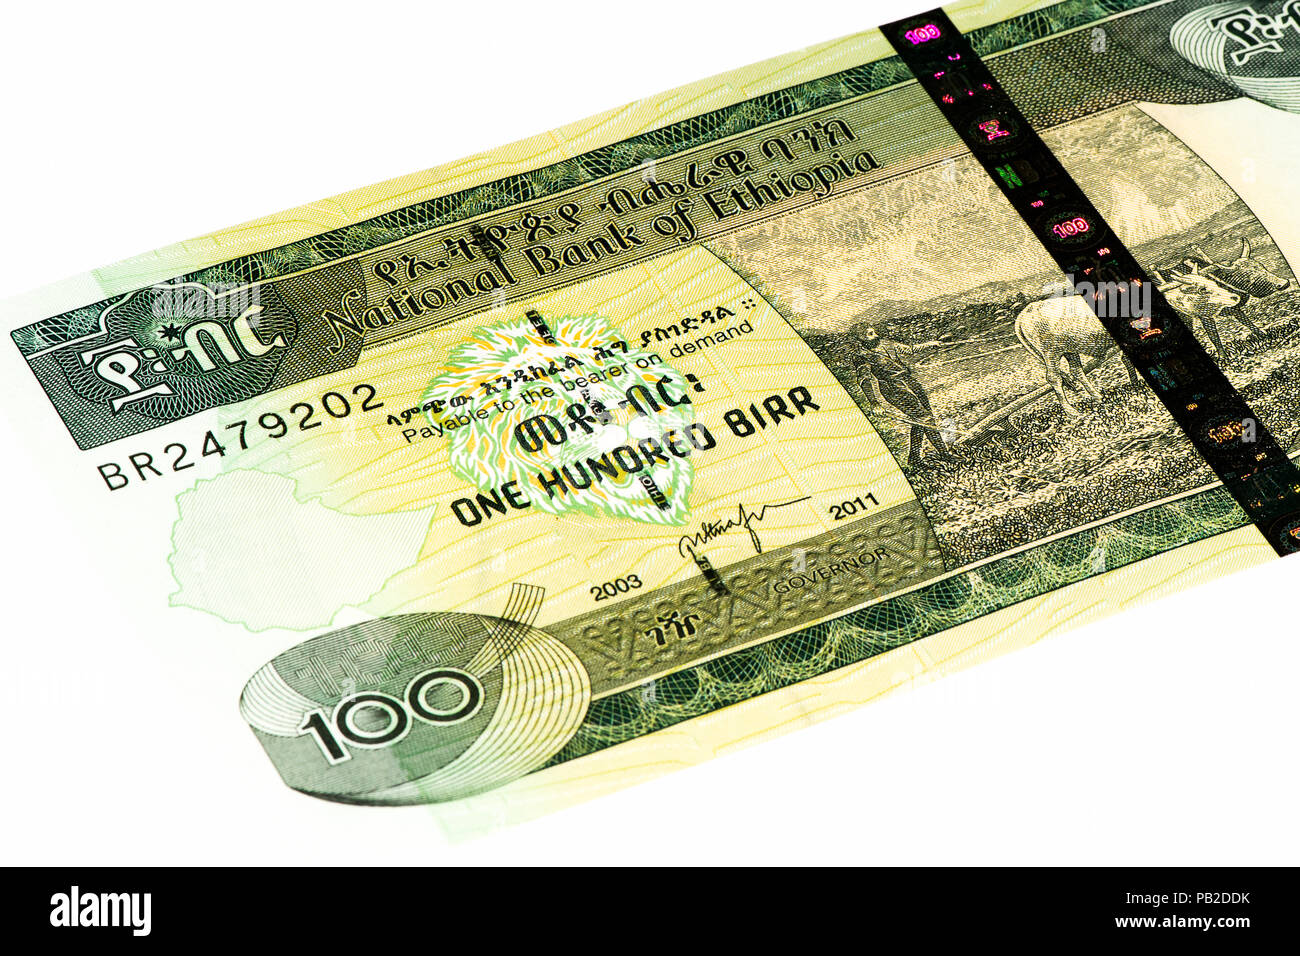 100 Ethiopian birr bank note. Birr is the national currency of Ethiopia Stock Photo